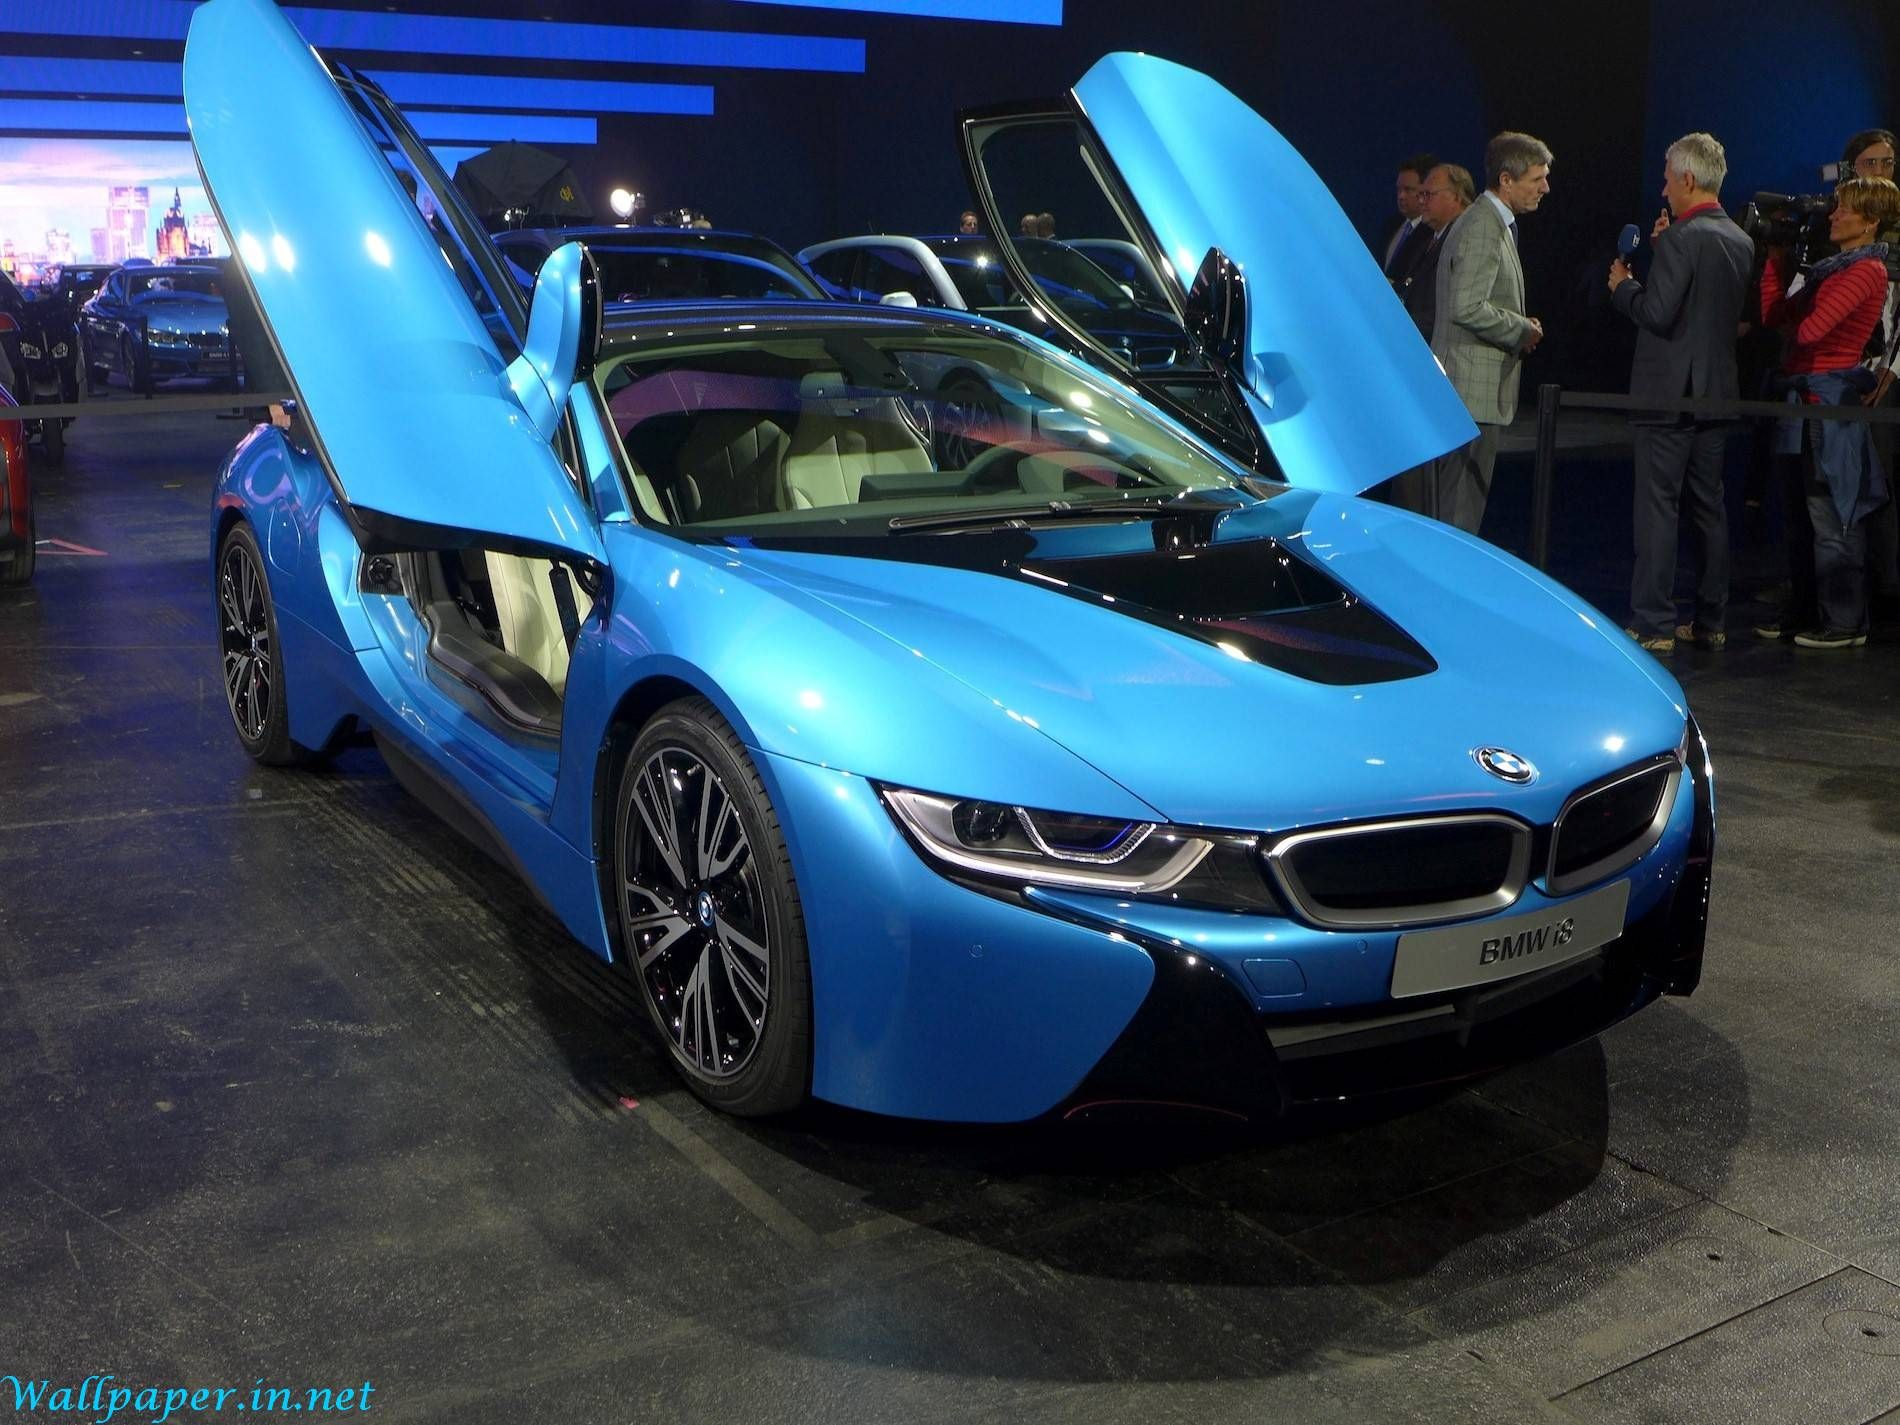 Bmw Cars Wallpapers 2014 Hd